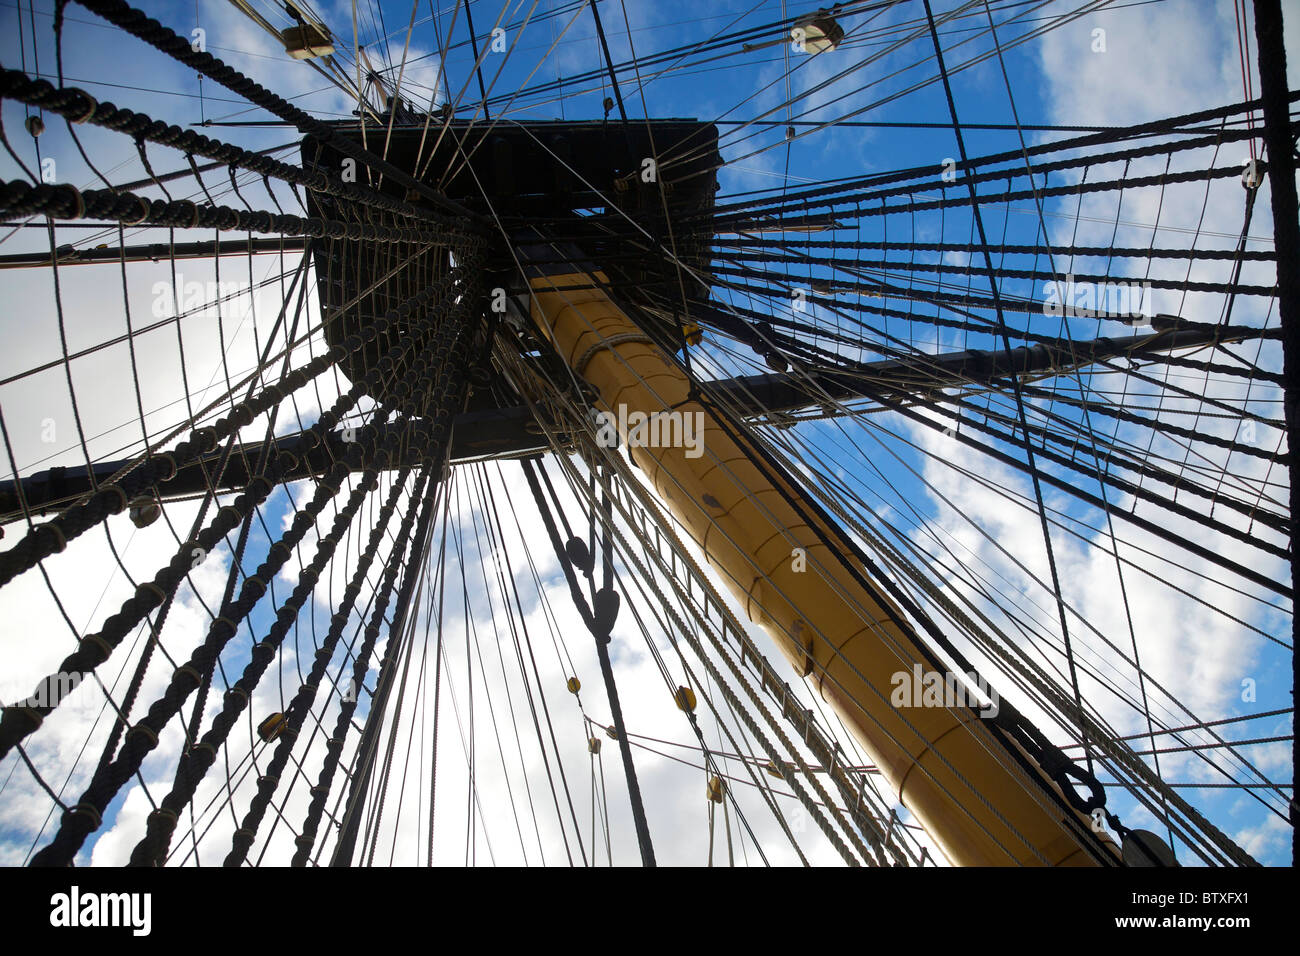 Rigging on HMS Victory - Stock Image